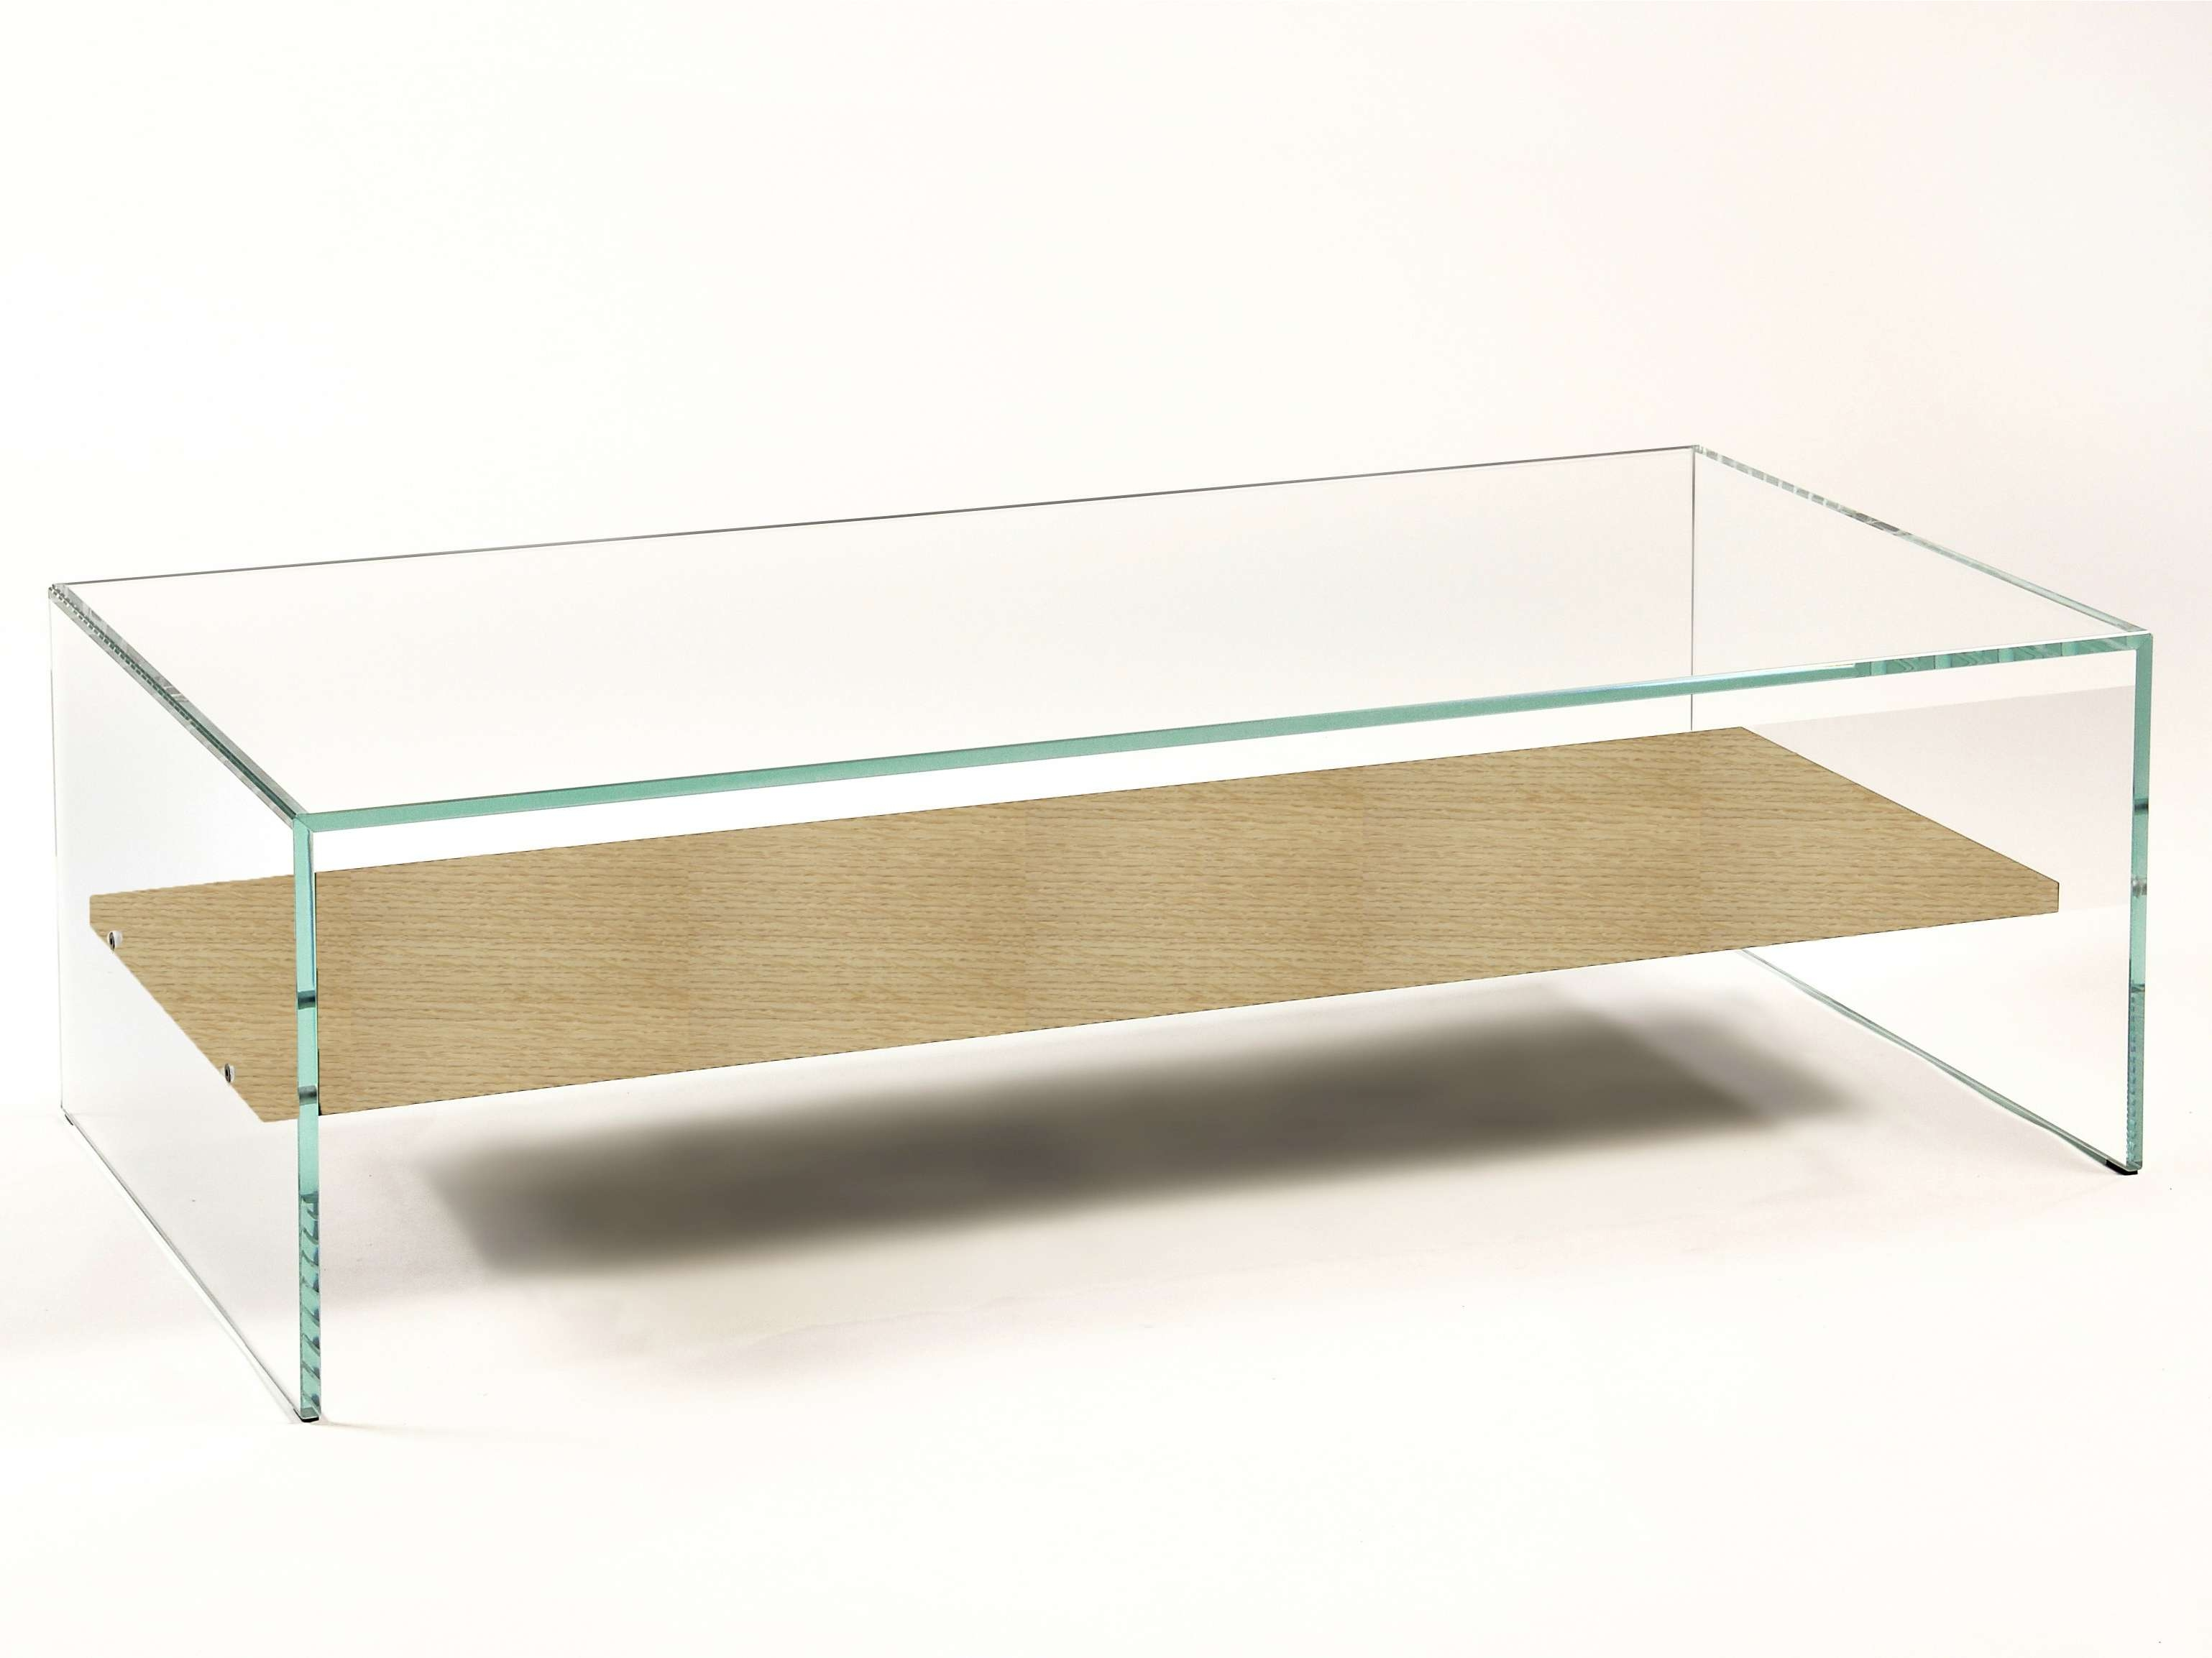 Custom Low Modern Glass Square Coffee Table With Wood Shelves For Within Trendy Glass Coffee Tables With Shelf (View 6 of 20)